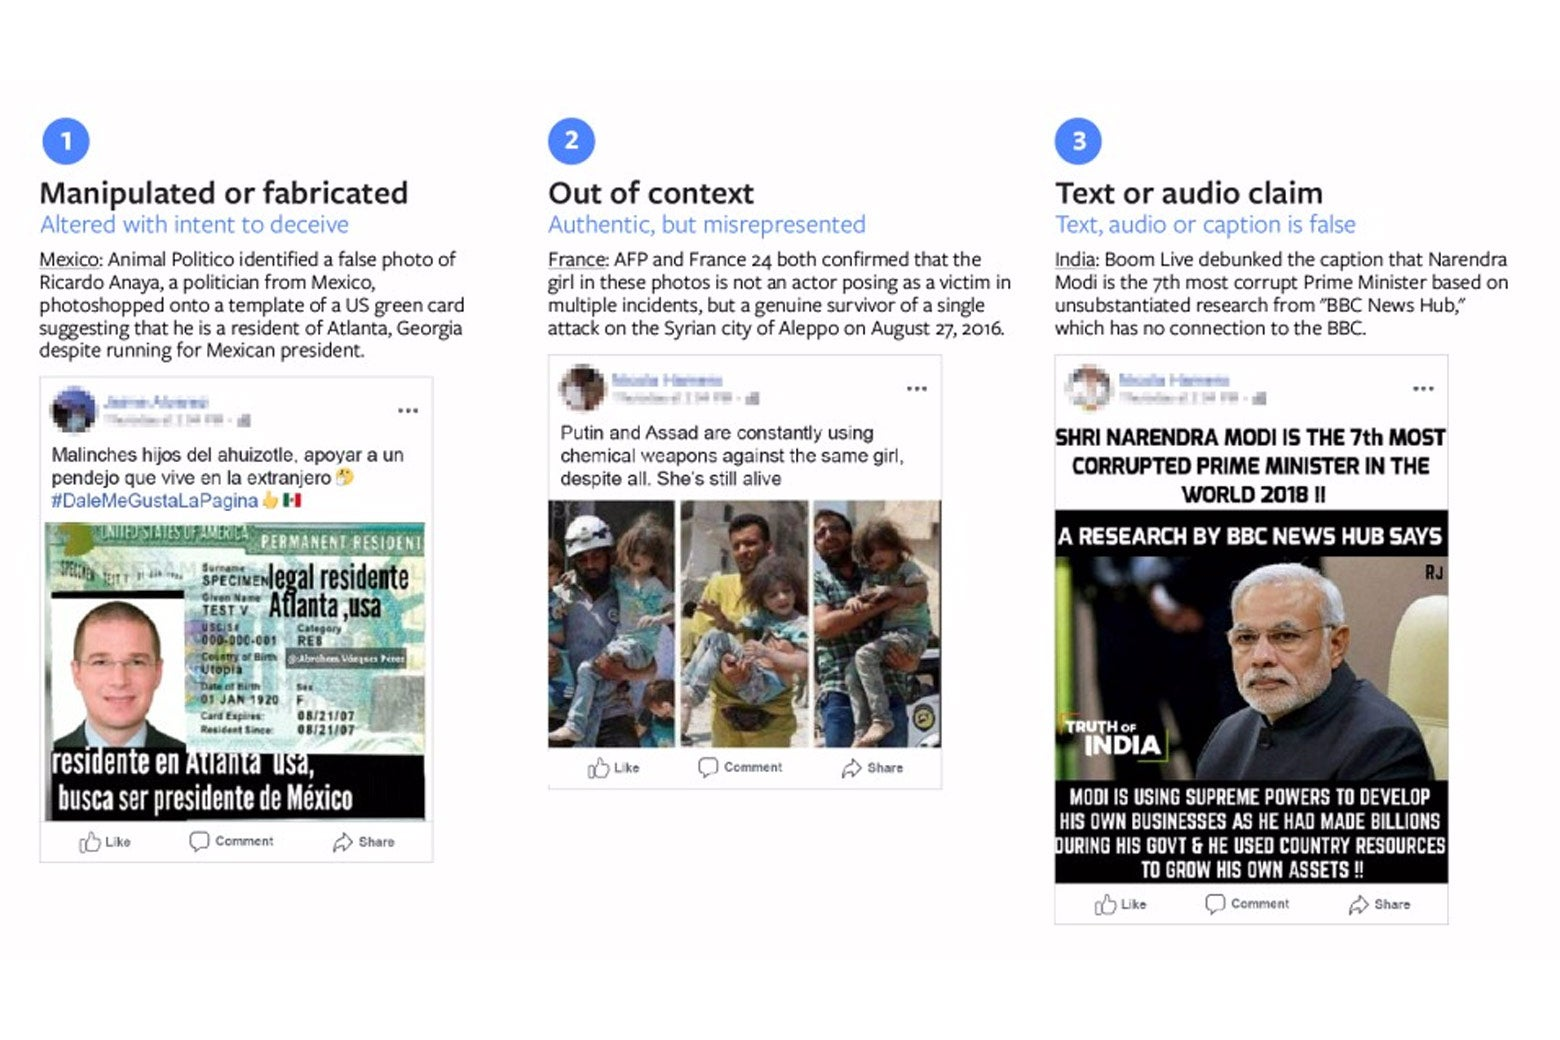 "Facebook gives examples of the three categories. For ""Manipulated or fabricated,"" it presents an image from the Mexican presidential election. For ""Out of context,"" there is a false meme claiming that a young girl from Syria is a crisis actor. For ""Text or audio claim,"" there is a caption on a meme about India's president's alleged corruption."